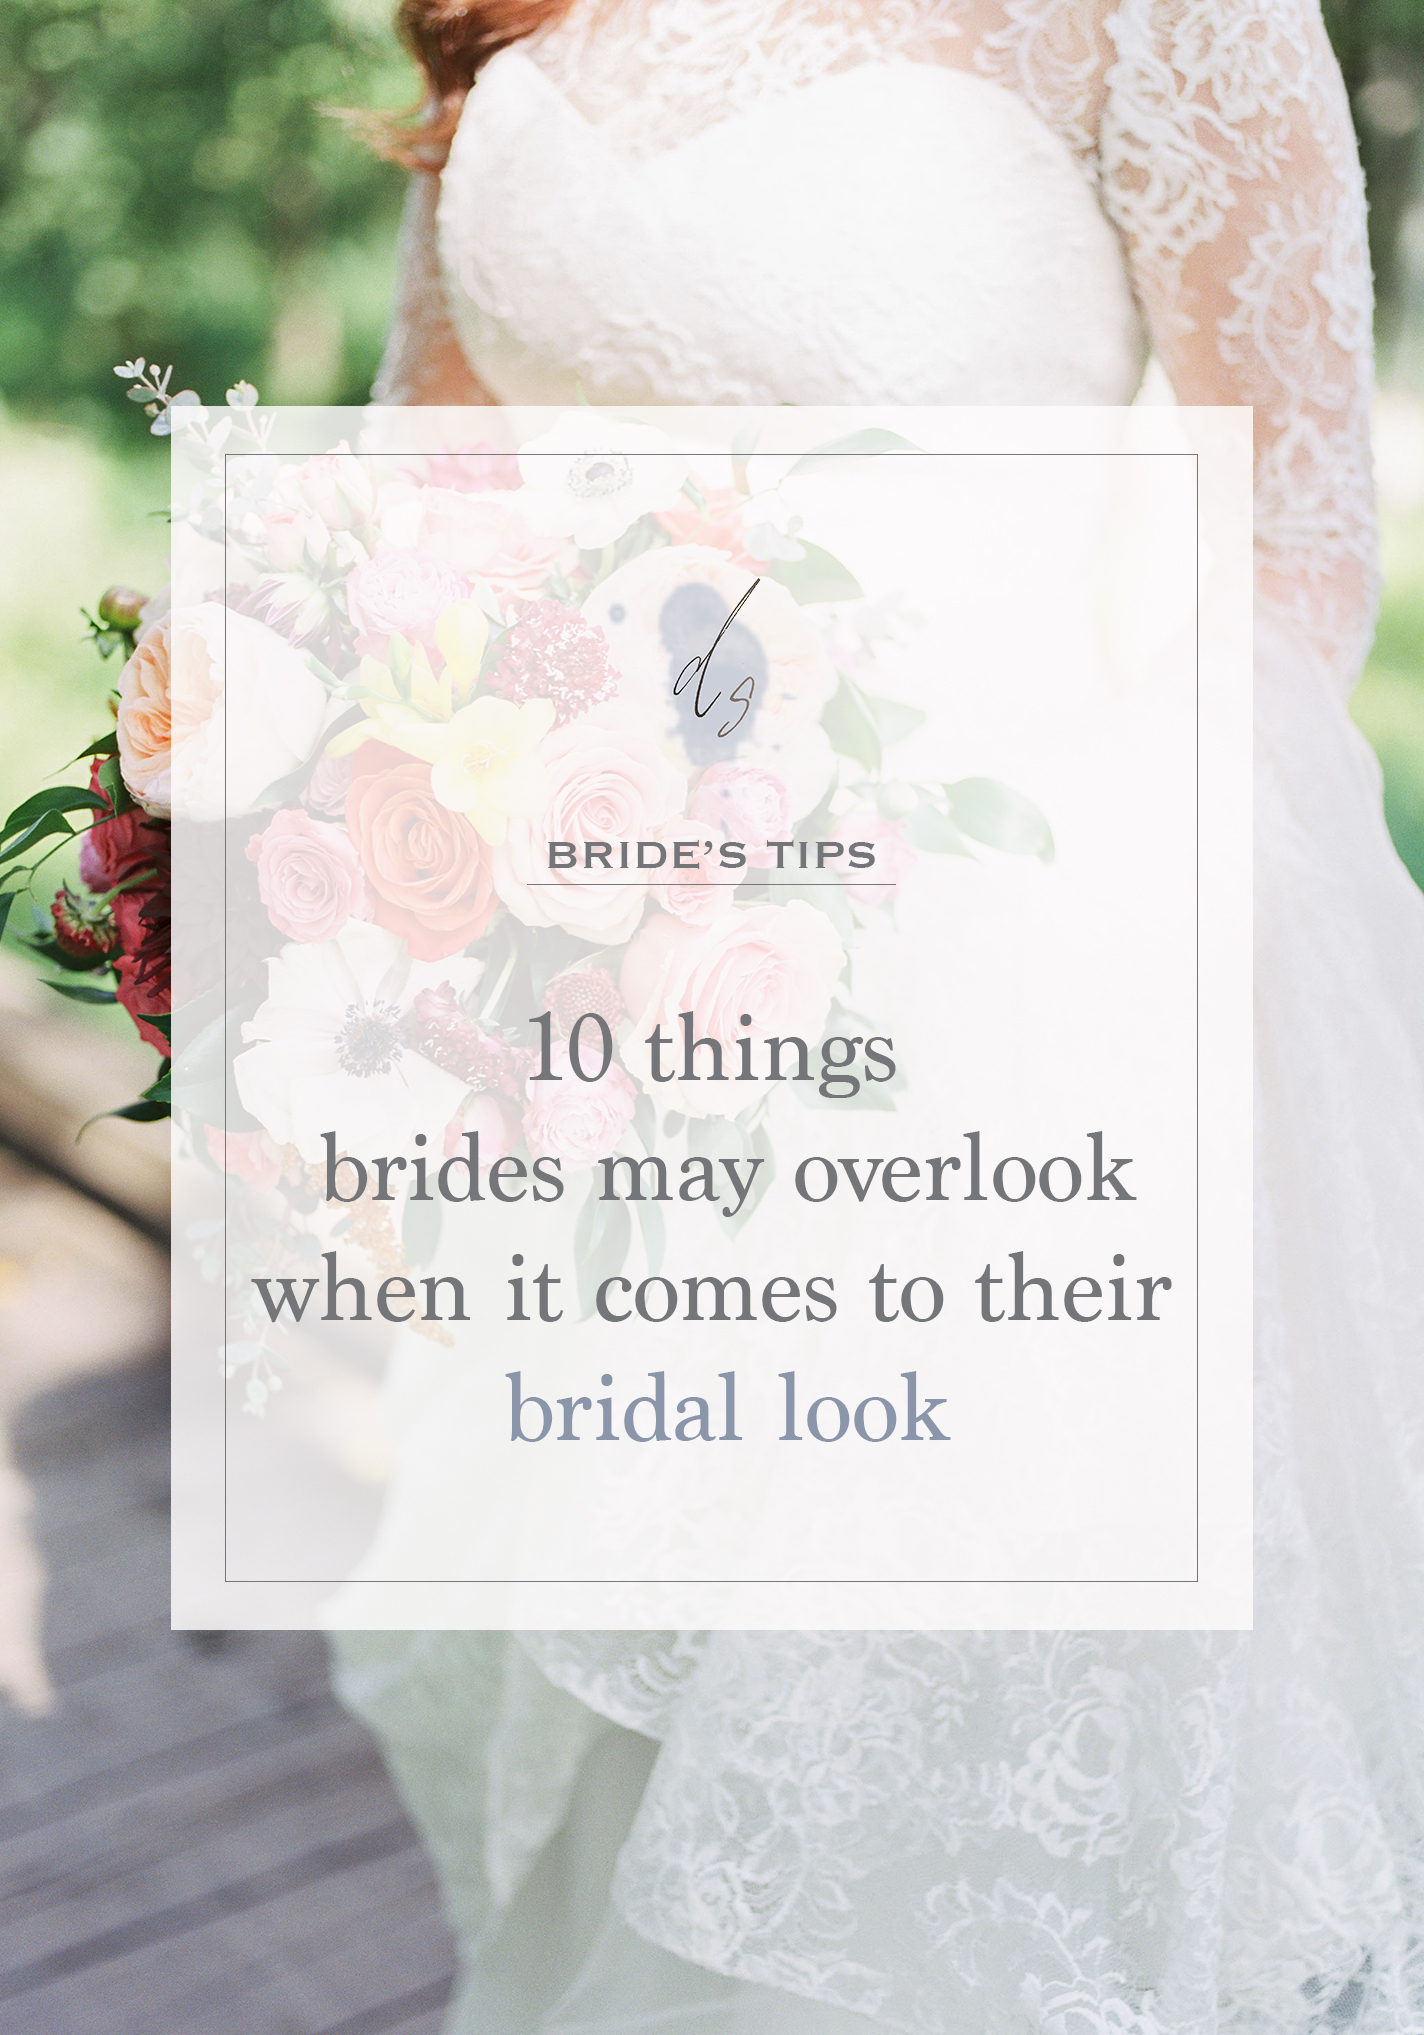 bride's tips, bridal look, wedding style, wedding planning, du soleil photographie, philadelphia wedding photographer